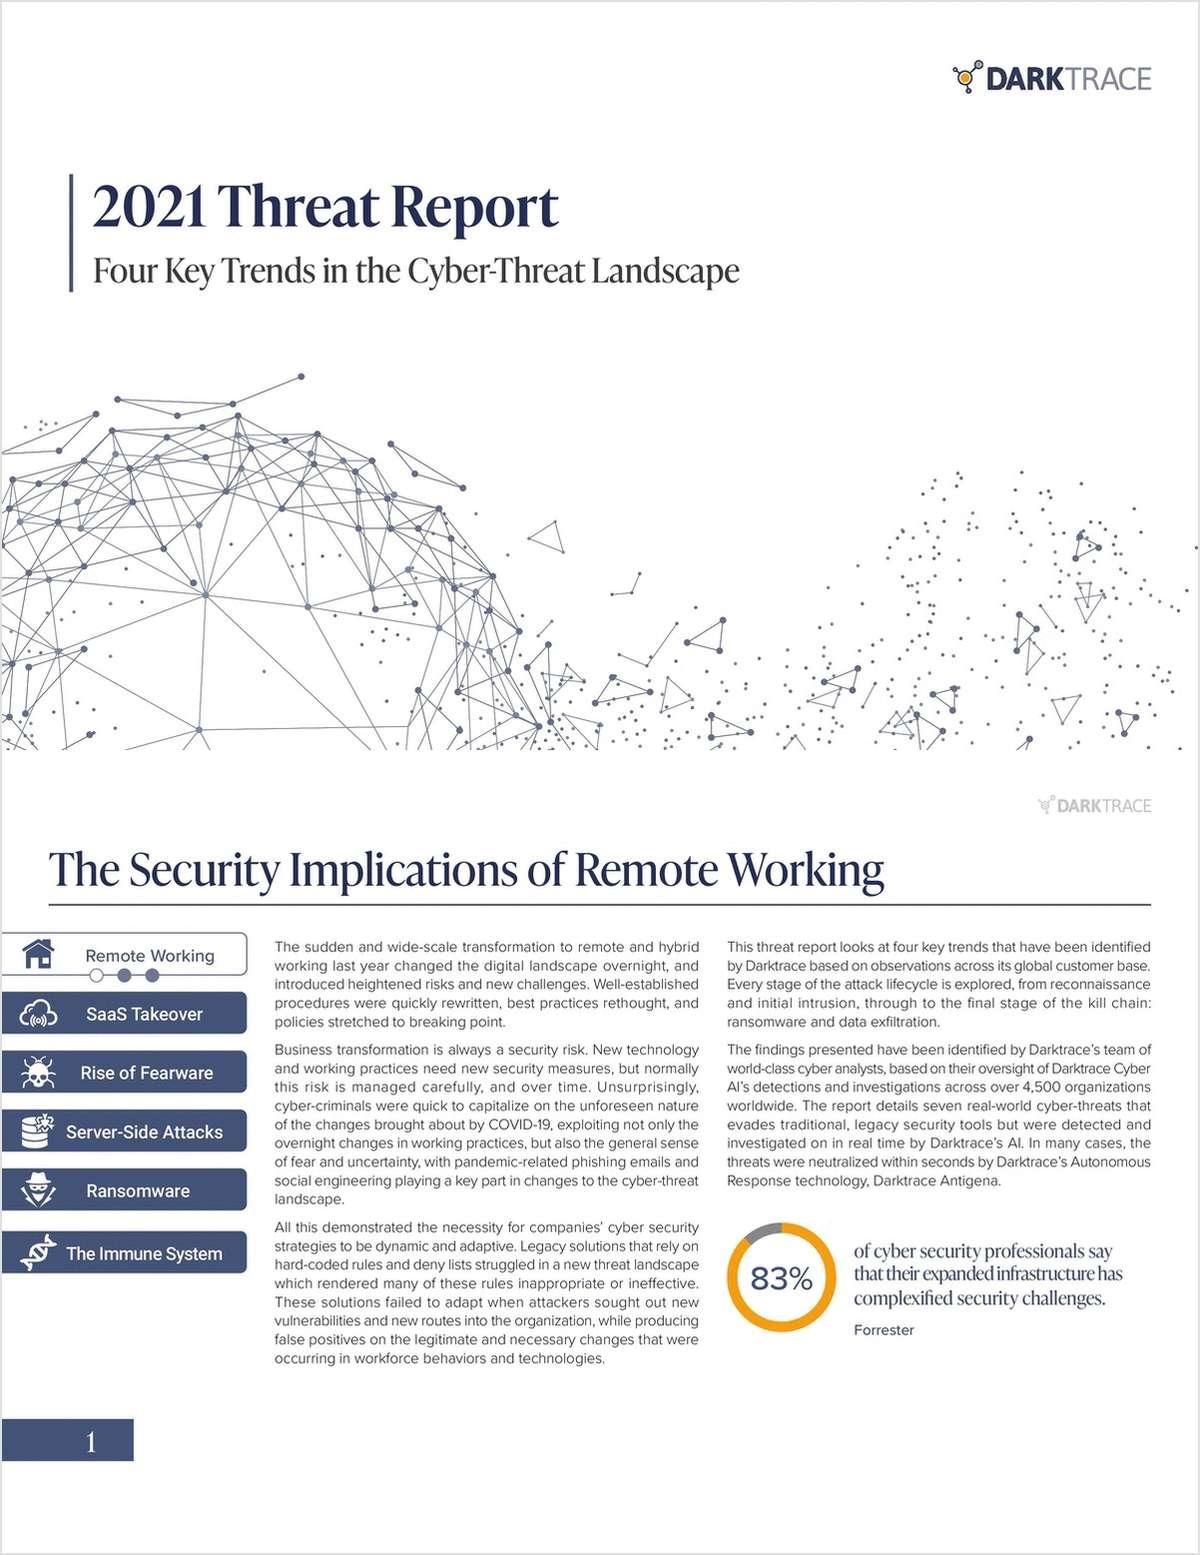 Four Key Trends in the Cyber-Threat Landscape: A 2021 Threat Report